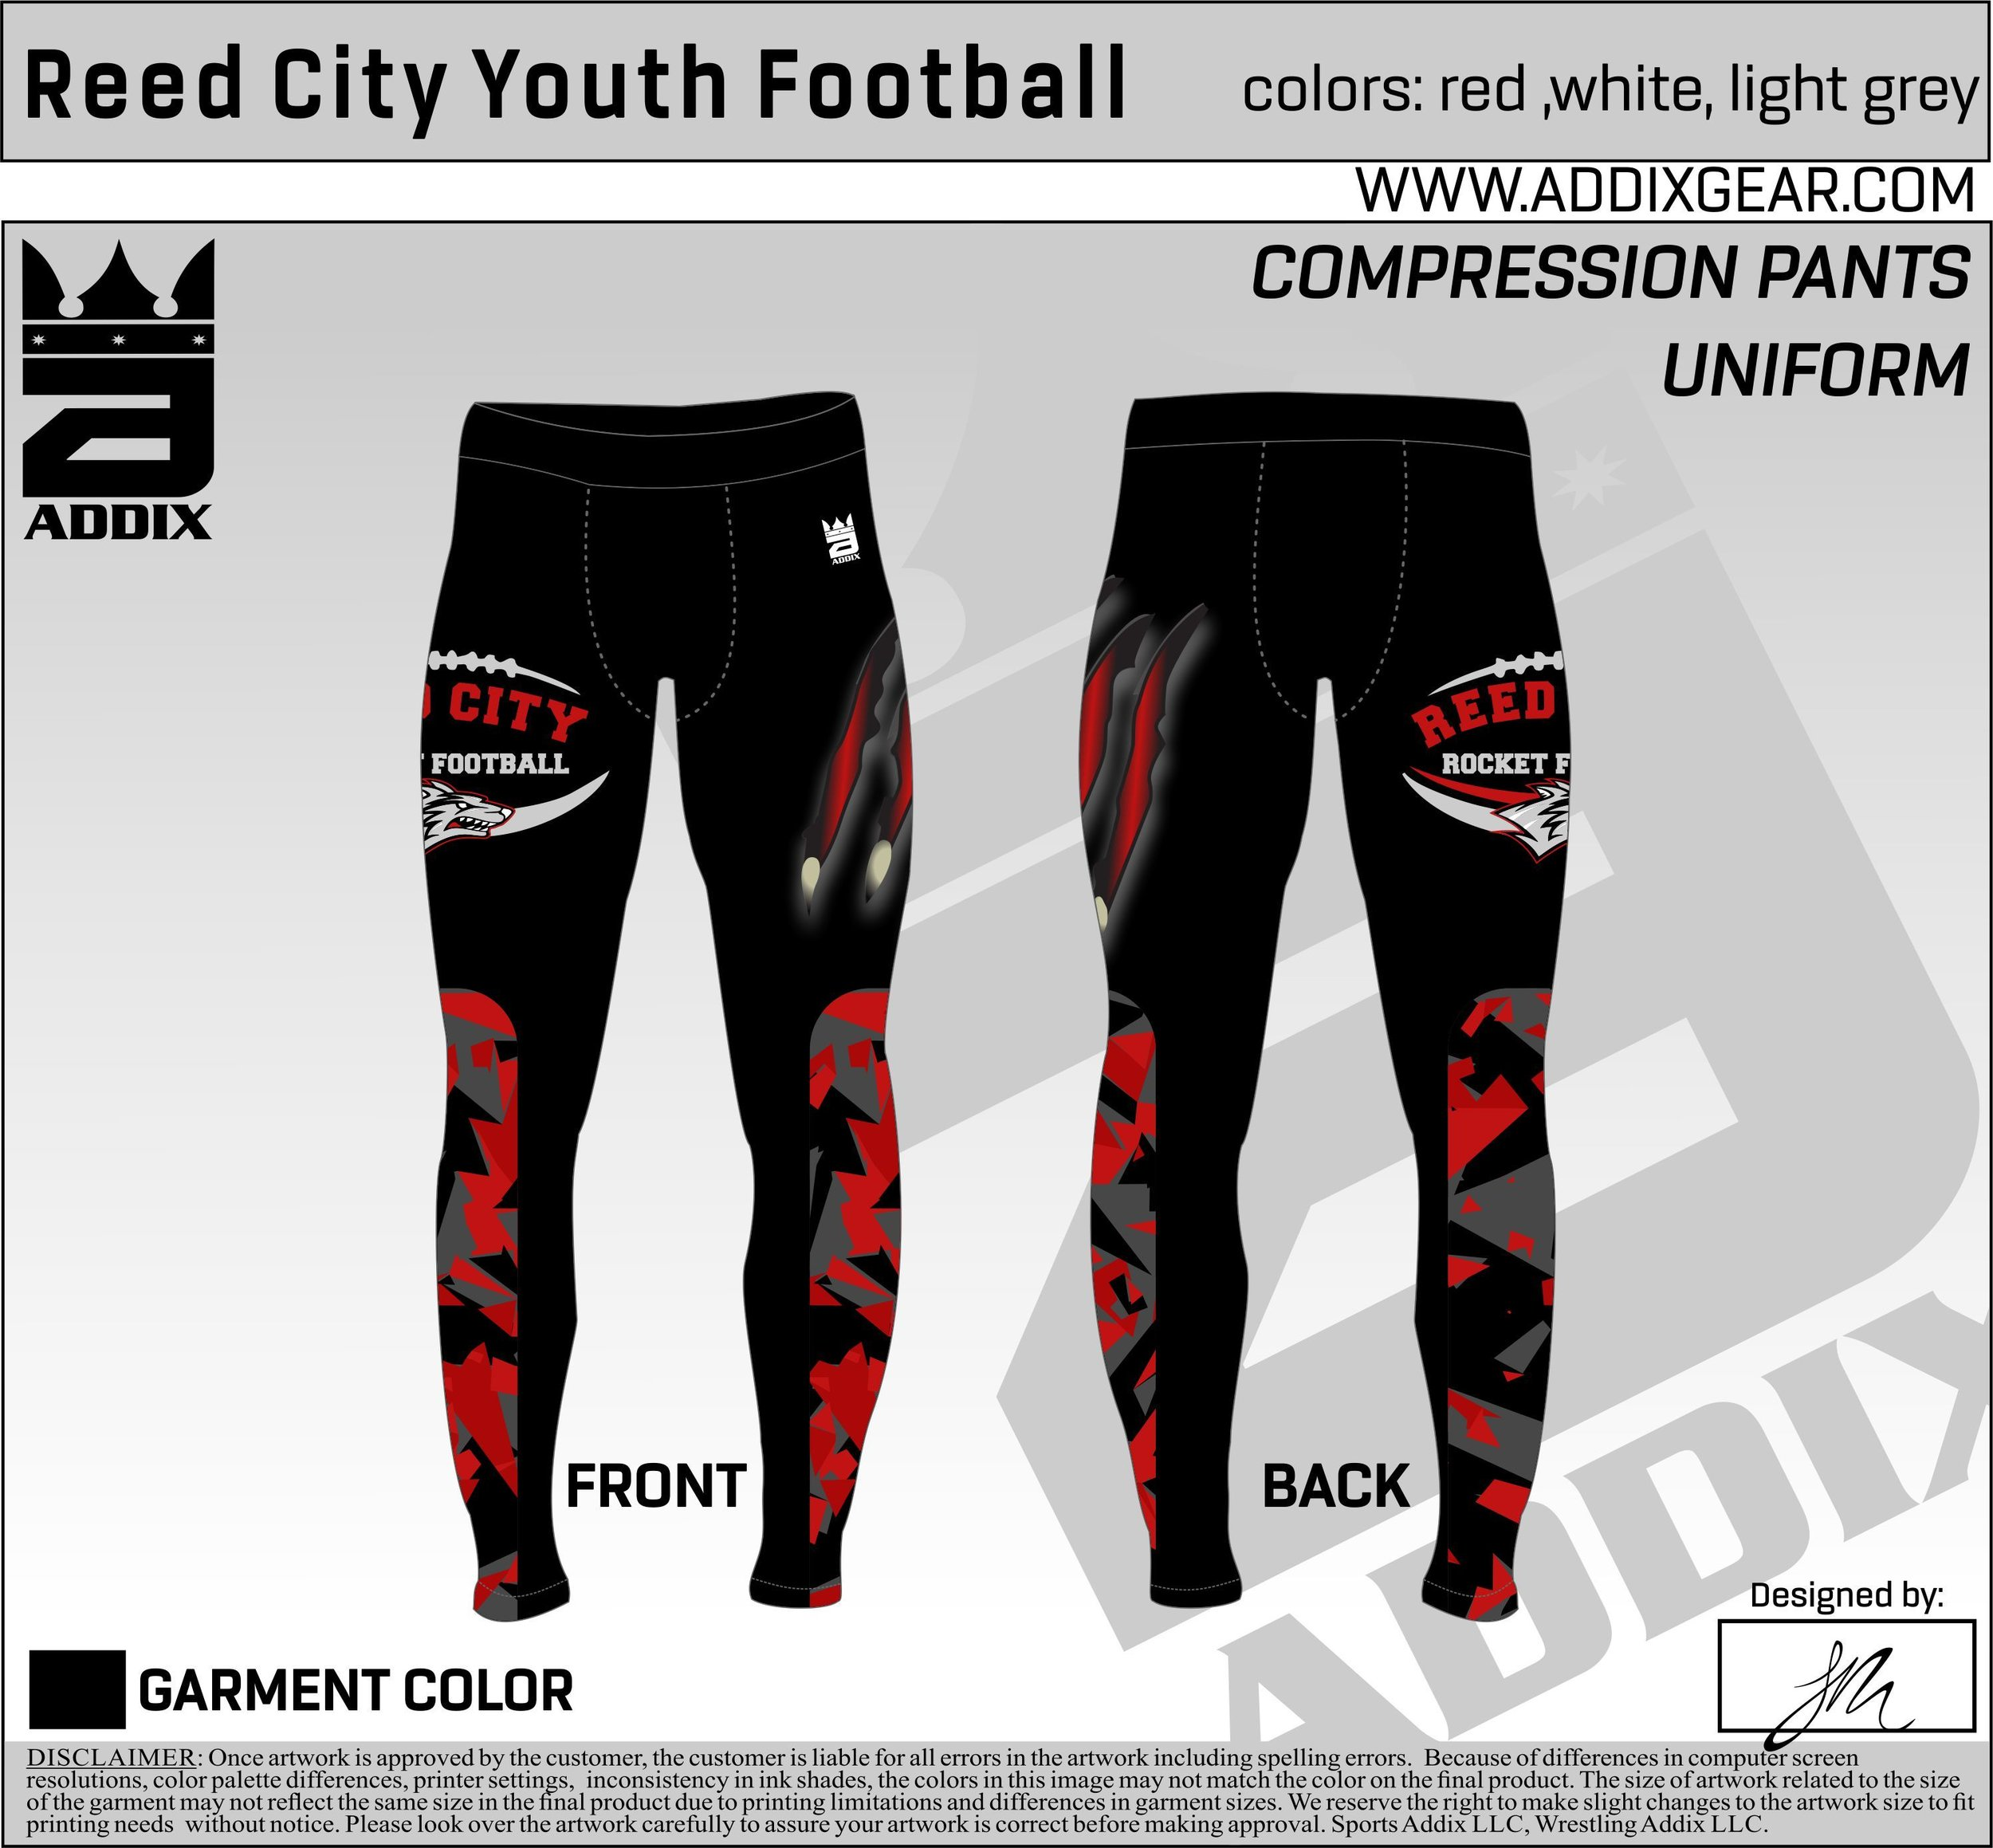 LM Reed City Youth Football 17 ( comp pants ) 10-18.jpg